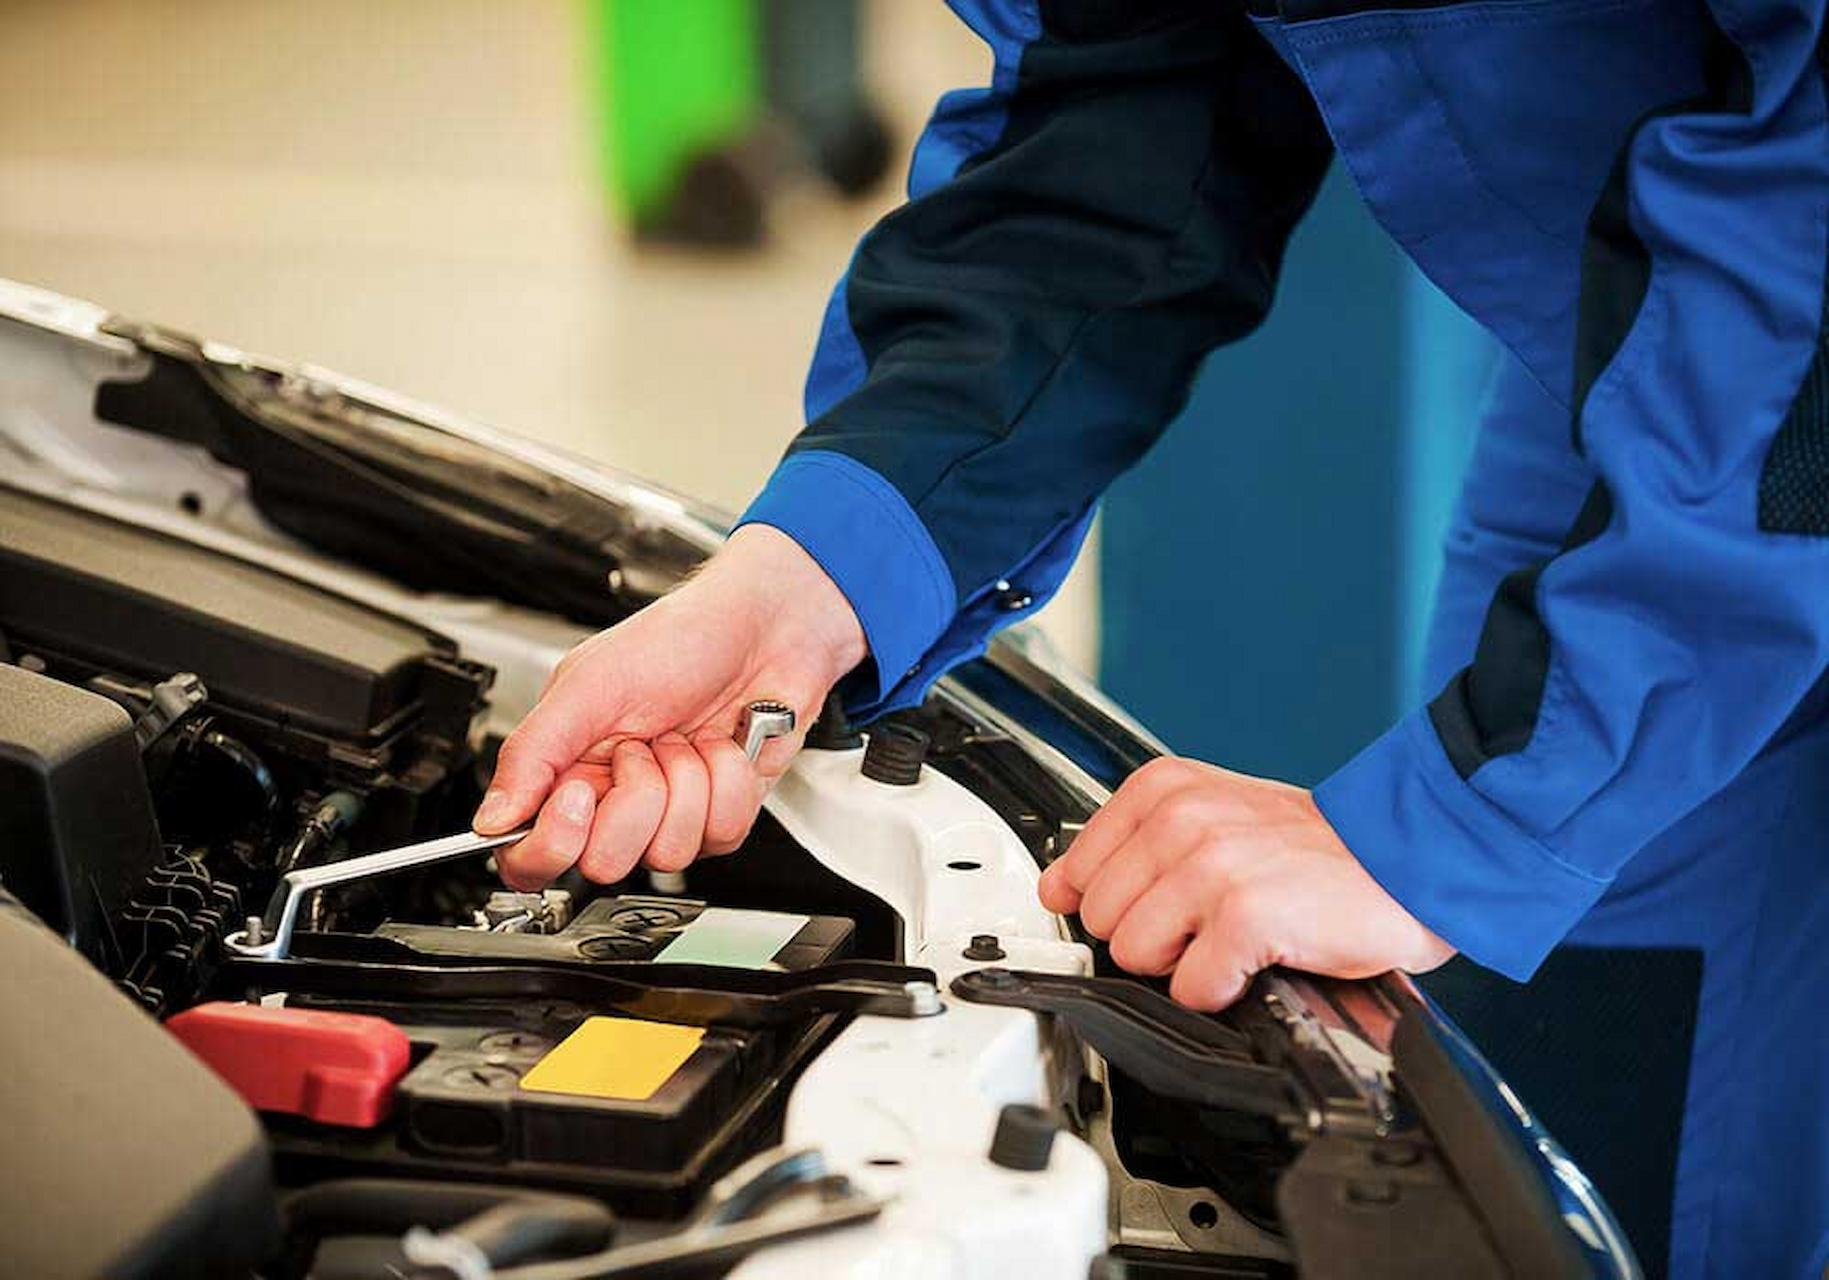 What Should You Know About Our BMW Servicing?